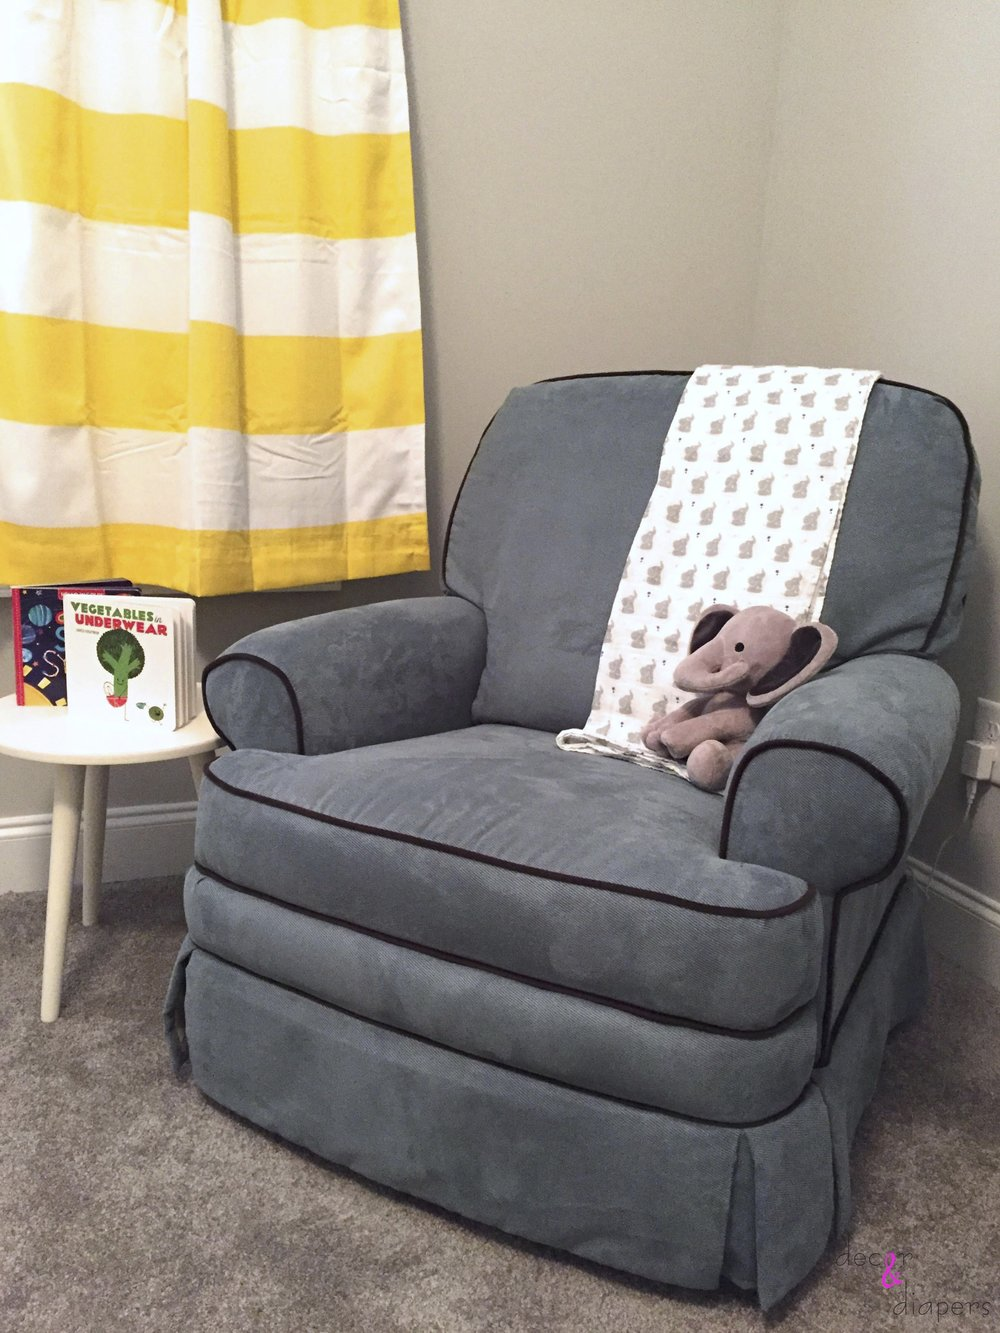 A cozy corner to feed and relax with baby